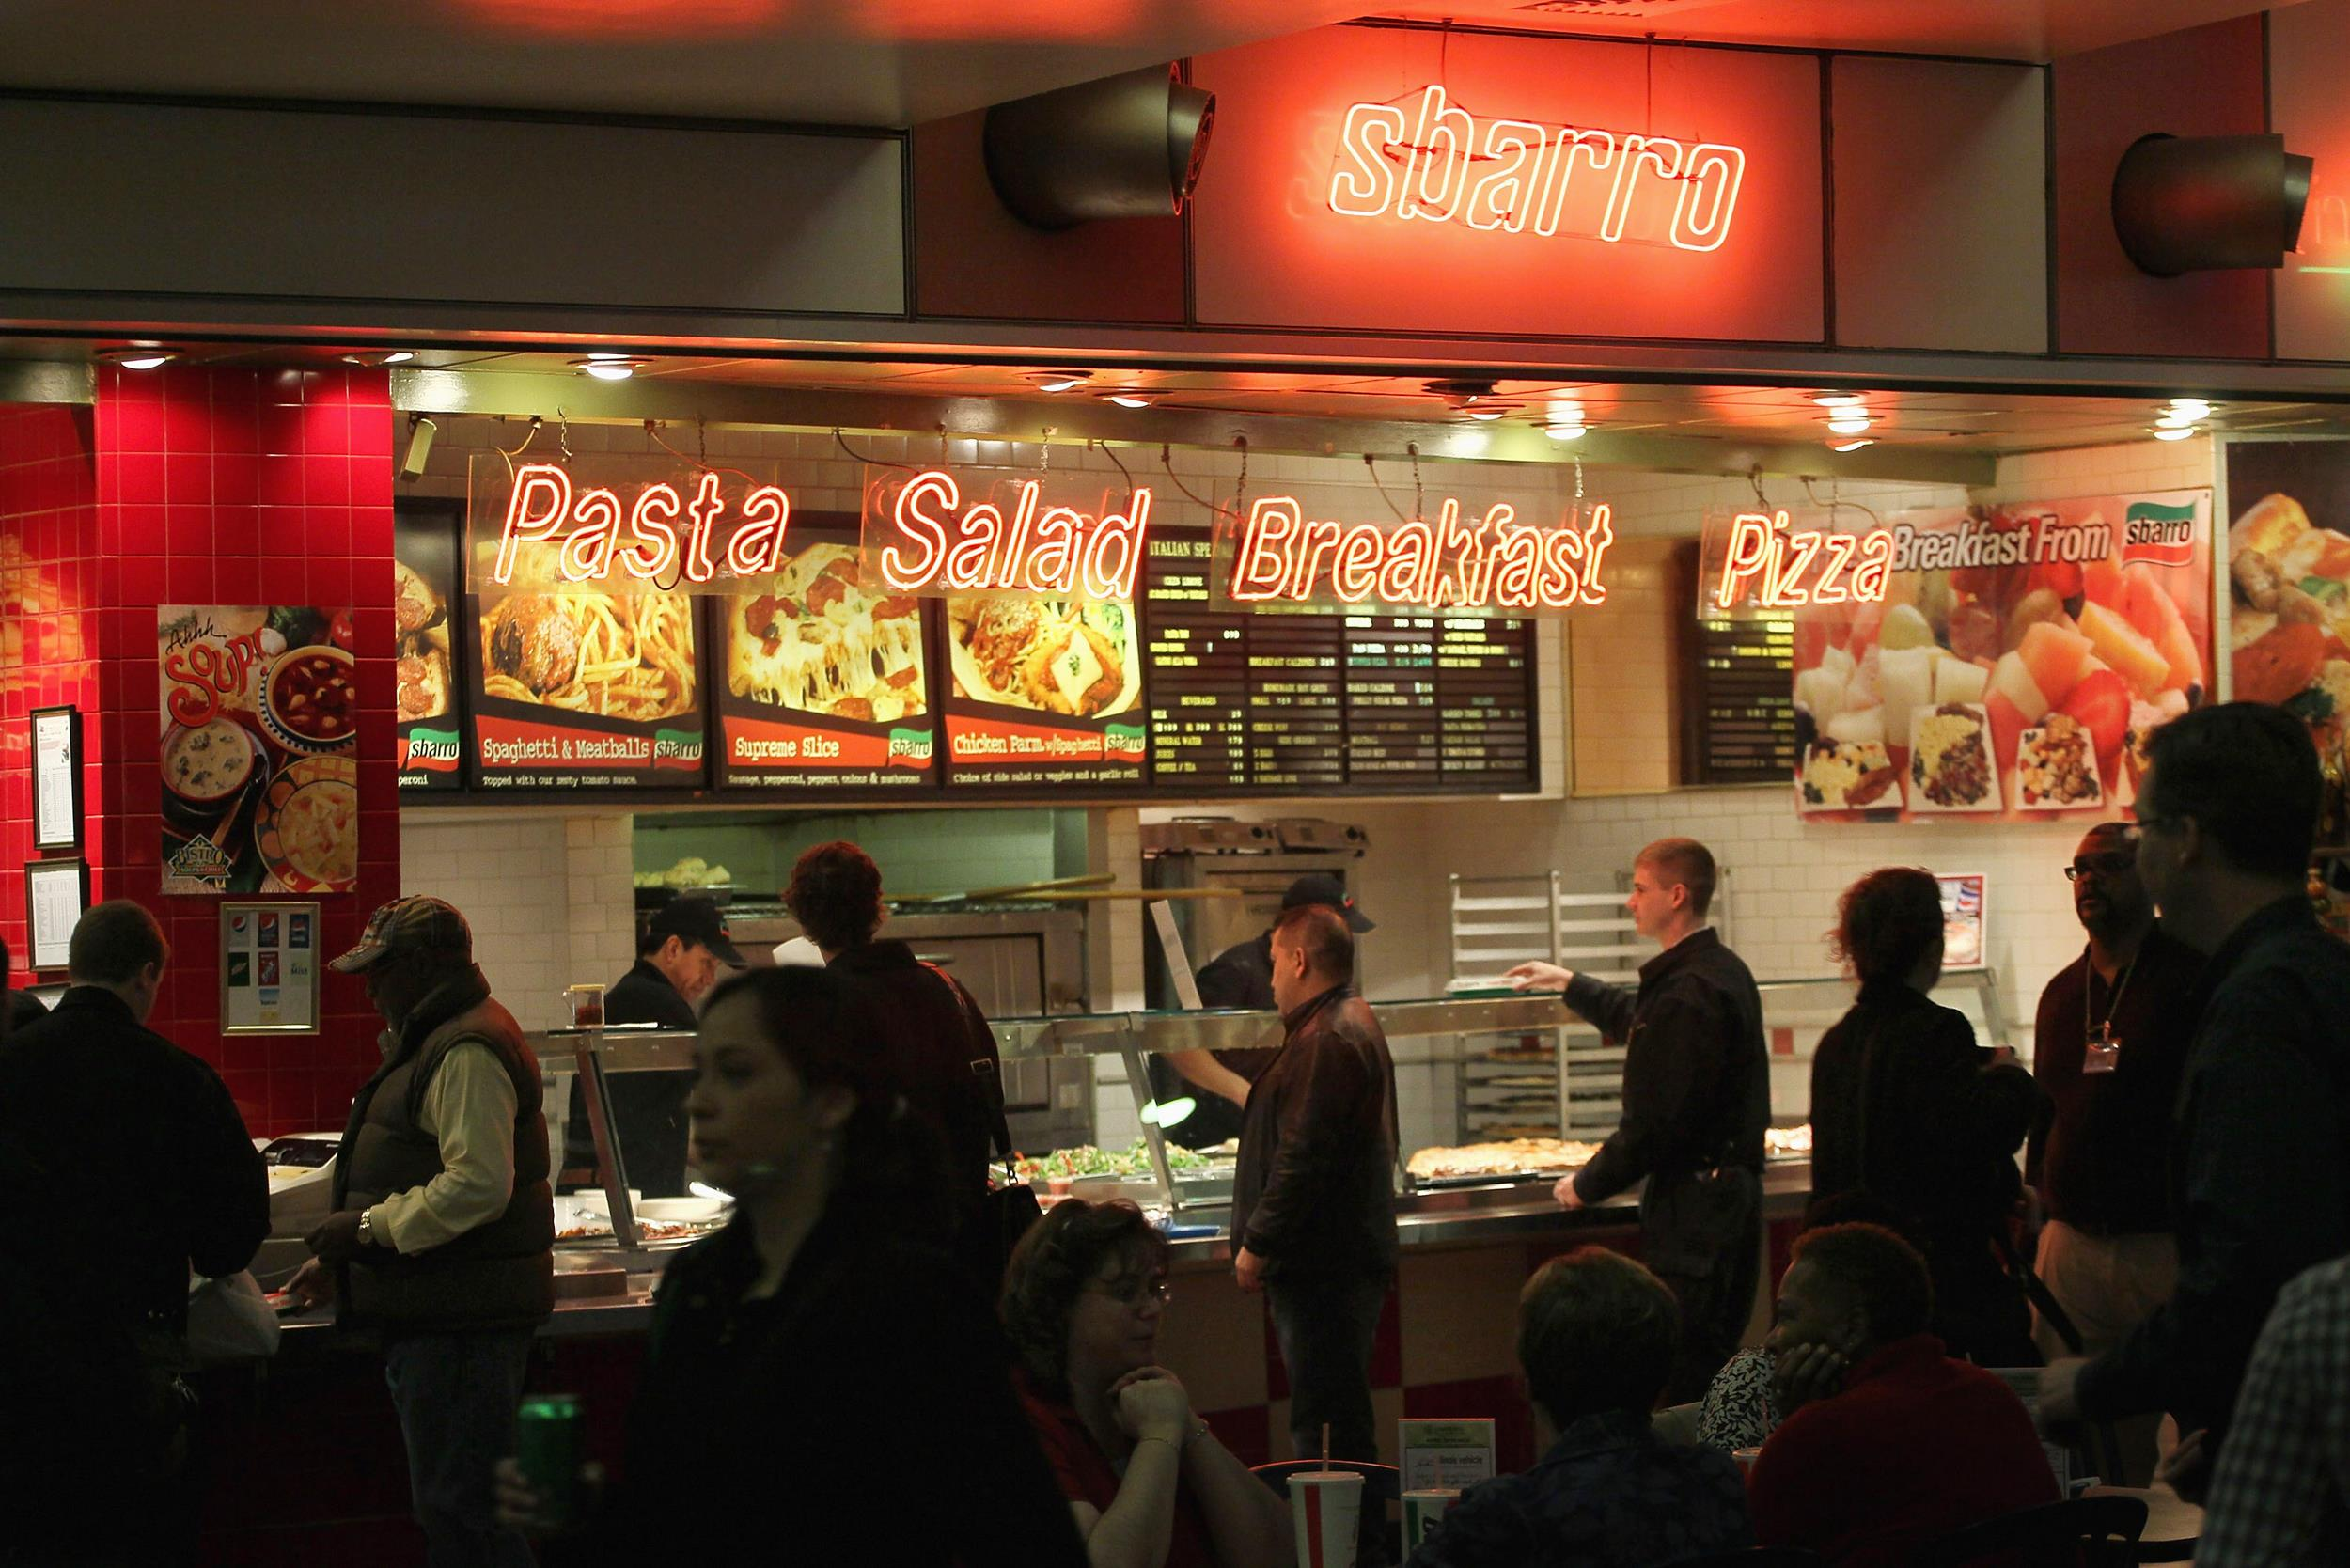 Customers order lunch at a Sbarro restaurant on April 4, 2011 in Chicago, Illinois.